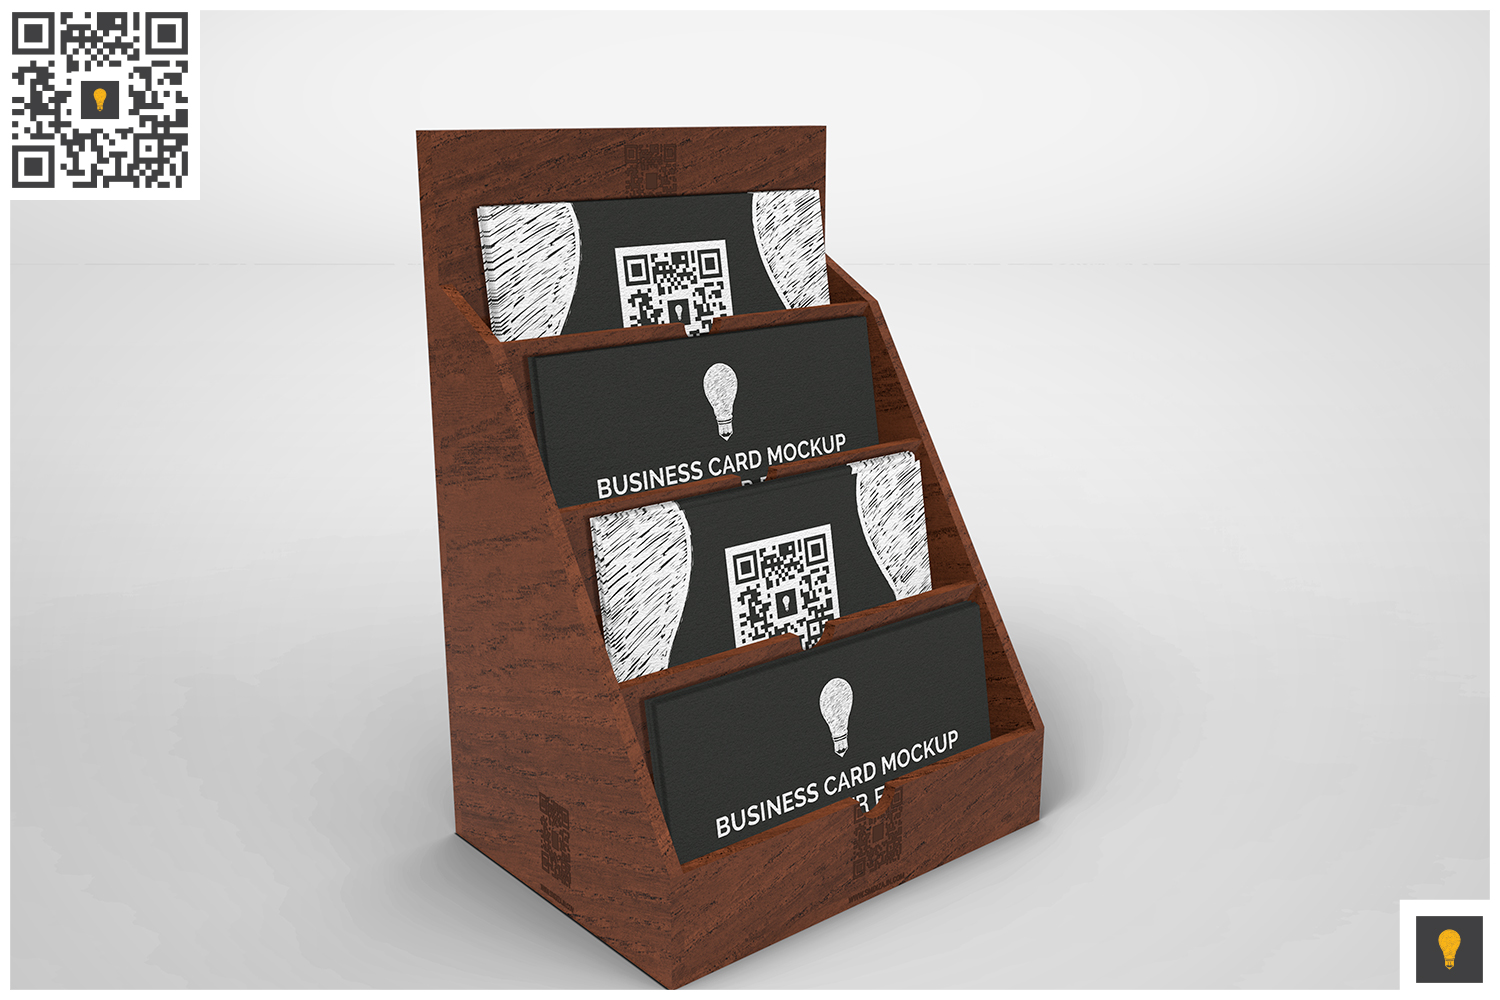 Business Card Holder Mockup example image 9